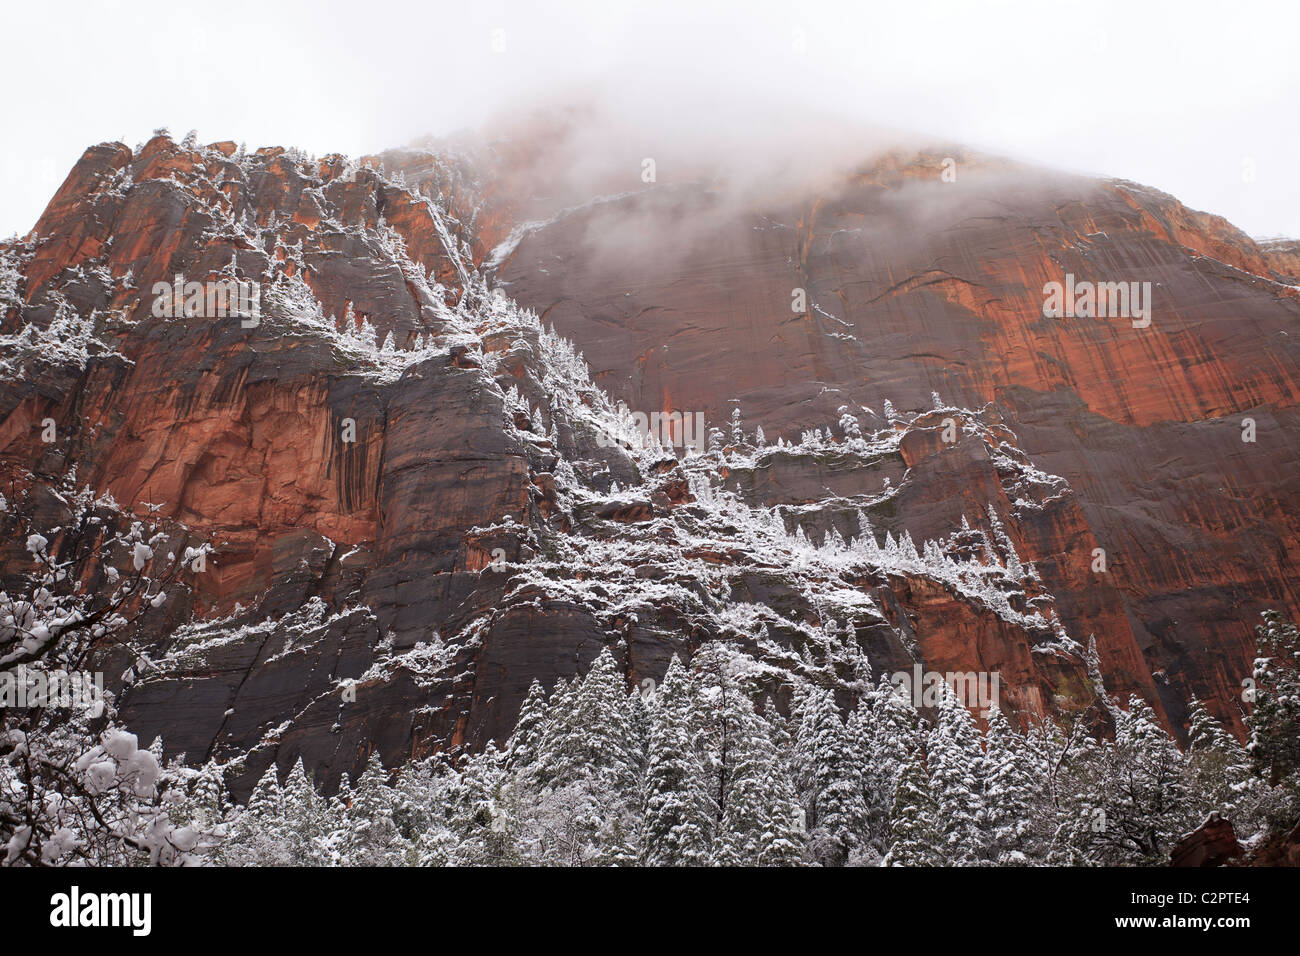 Trees dusted by snow on the walls of Zion Canyon in Utah (USA) - Stock Image